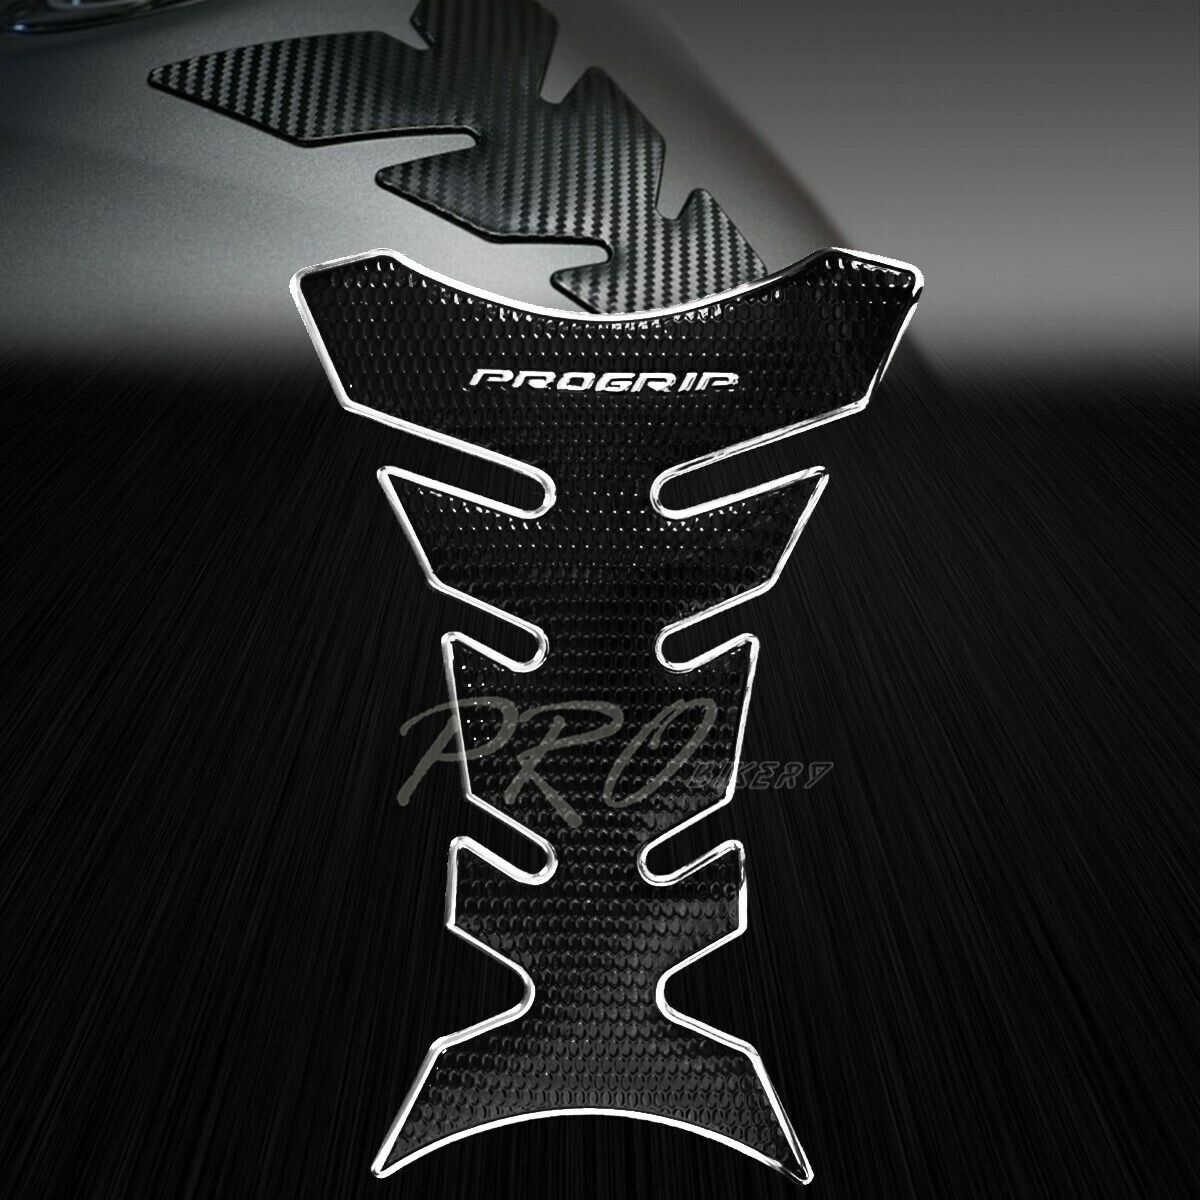 Gas Tank Pad Protector Decal Perforated Black 3D Pro Grip Fuel Oil Chromed Black